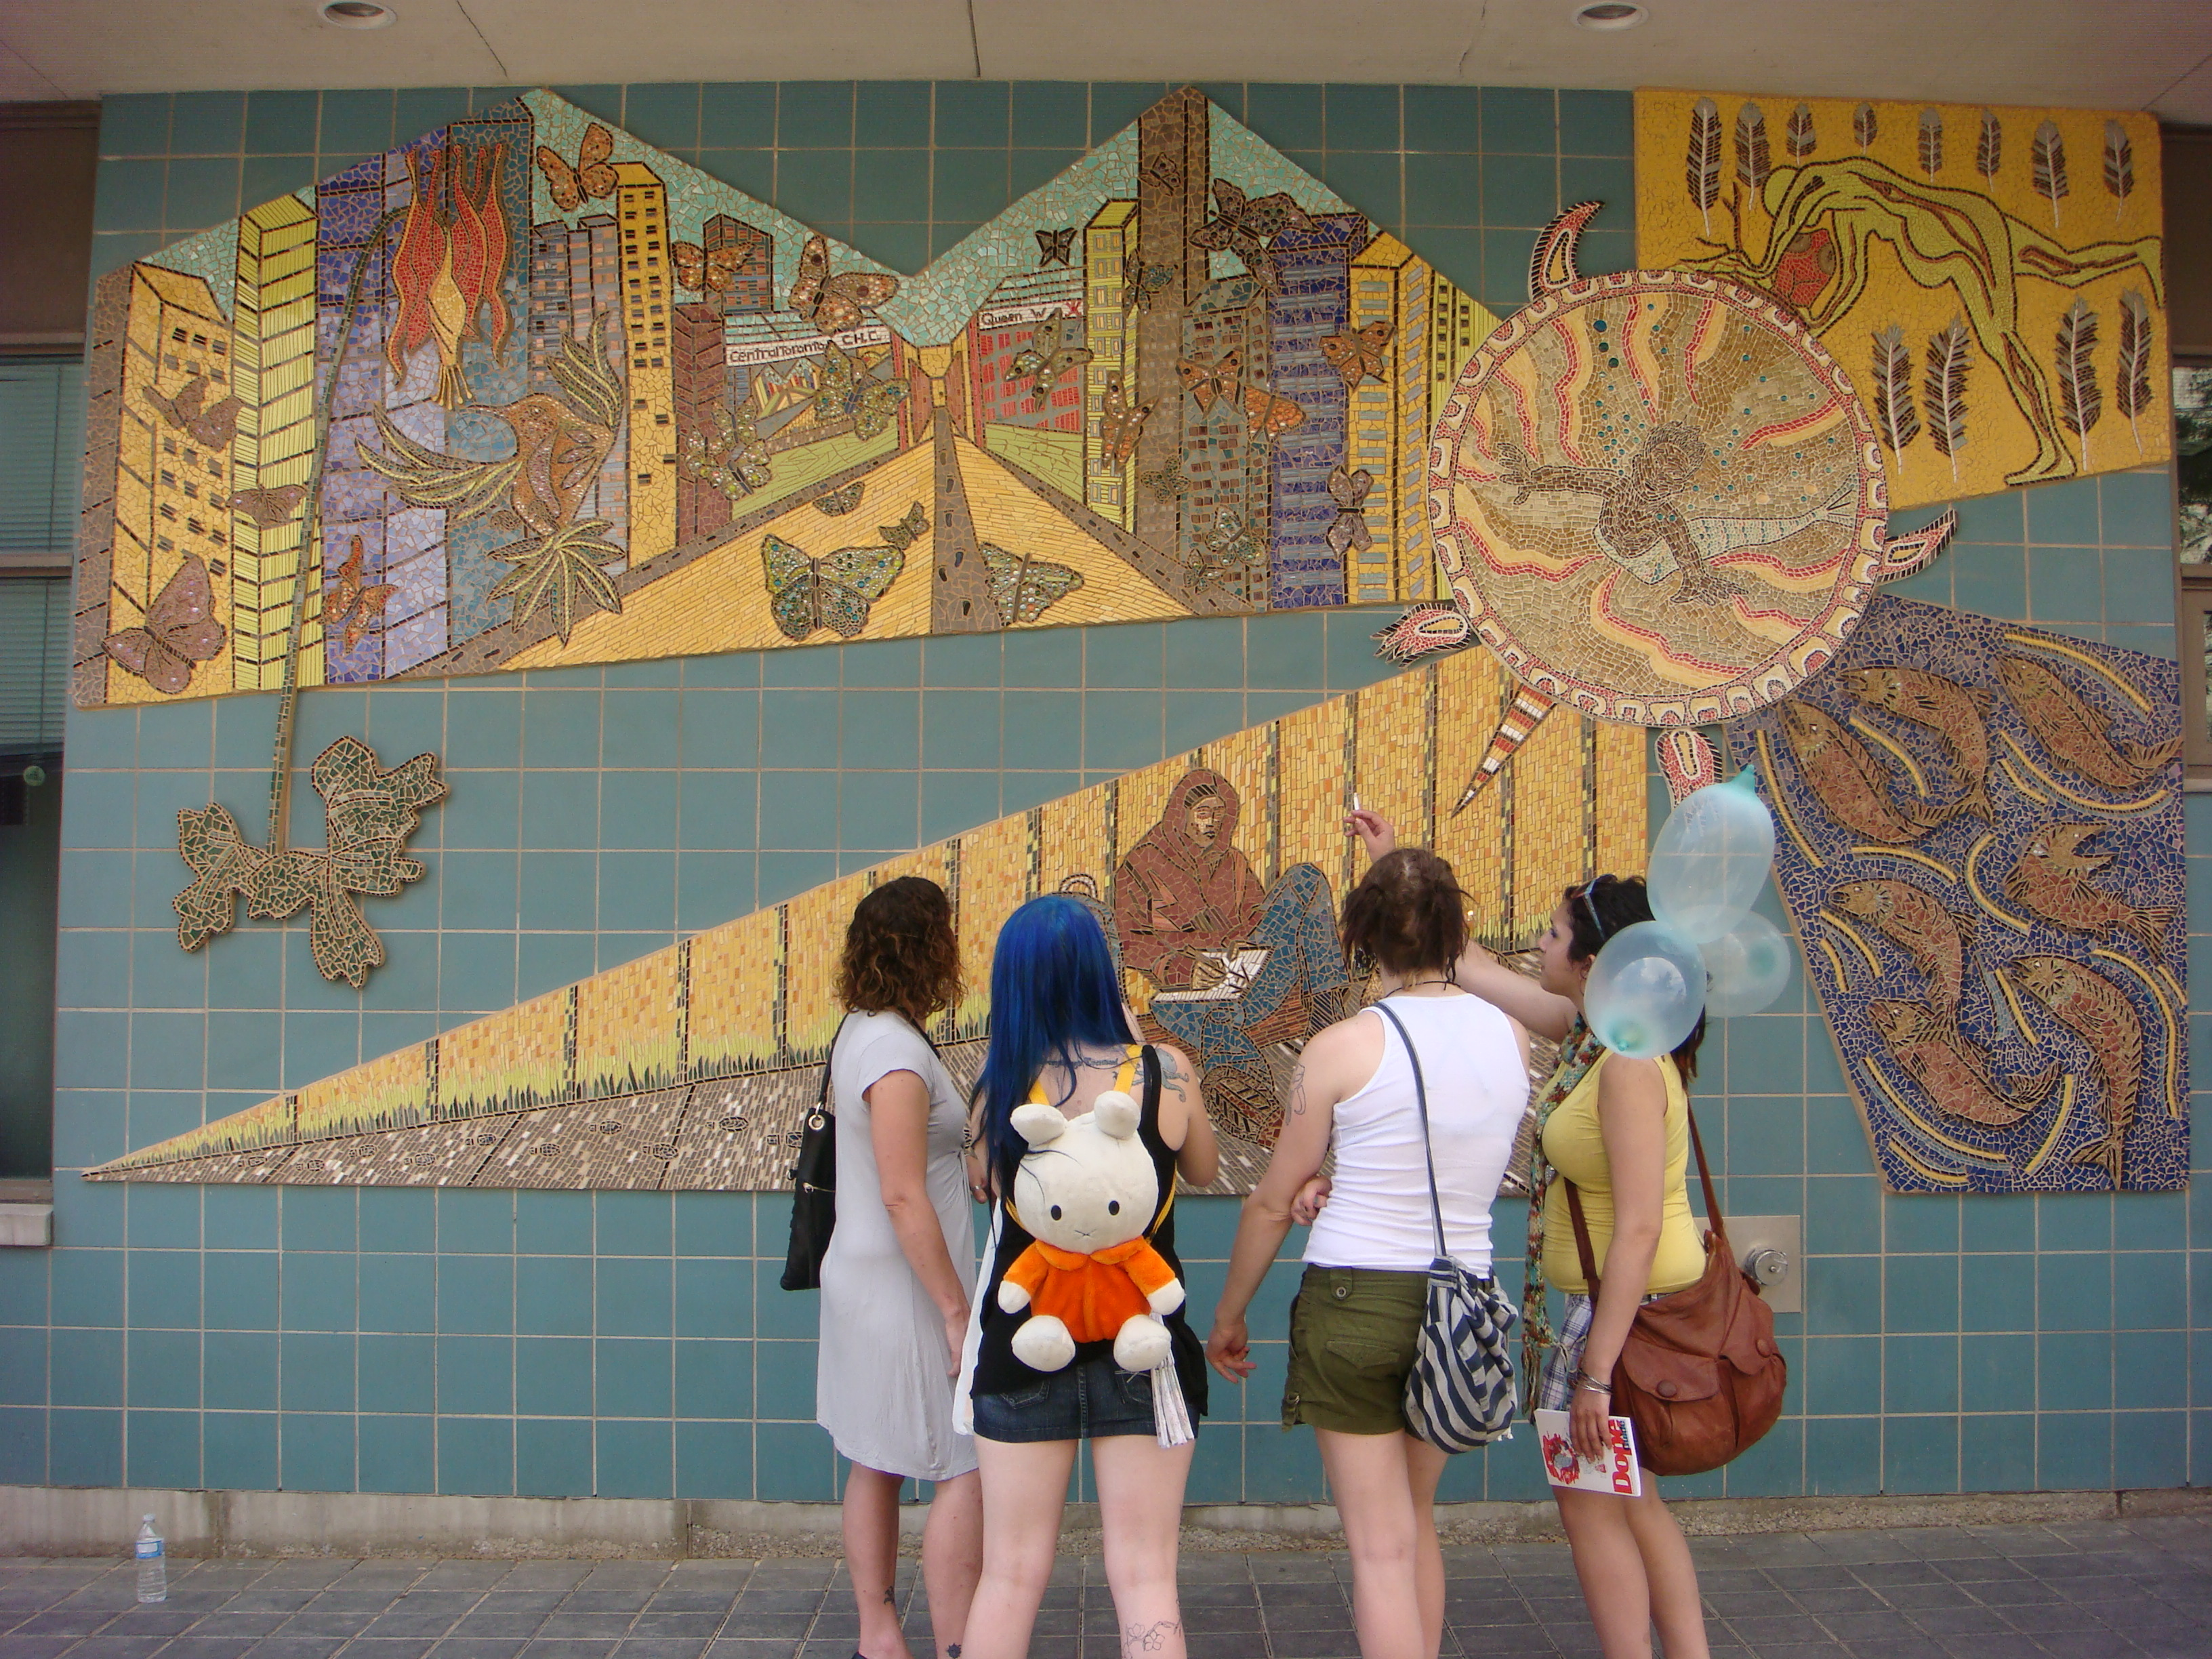 [Image description: A photograph of four people looking at a mural on a wall. The mural is coloured in muted earthy tones and depicts a downtown cityscape with birds and butterflies flying, as well as a person reading a book, a human figure pushing a turtle representing Turtle Island, and many fish crowded together]